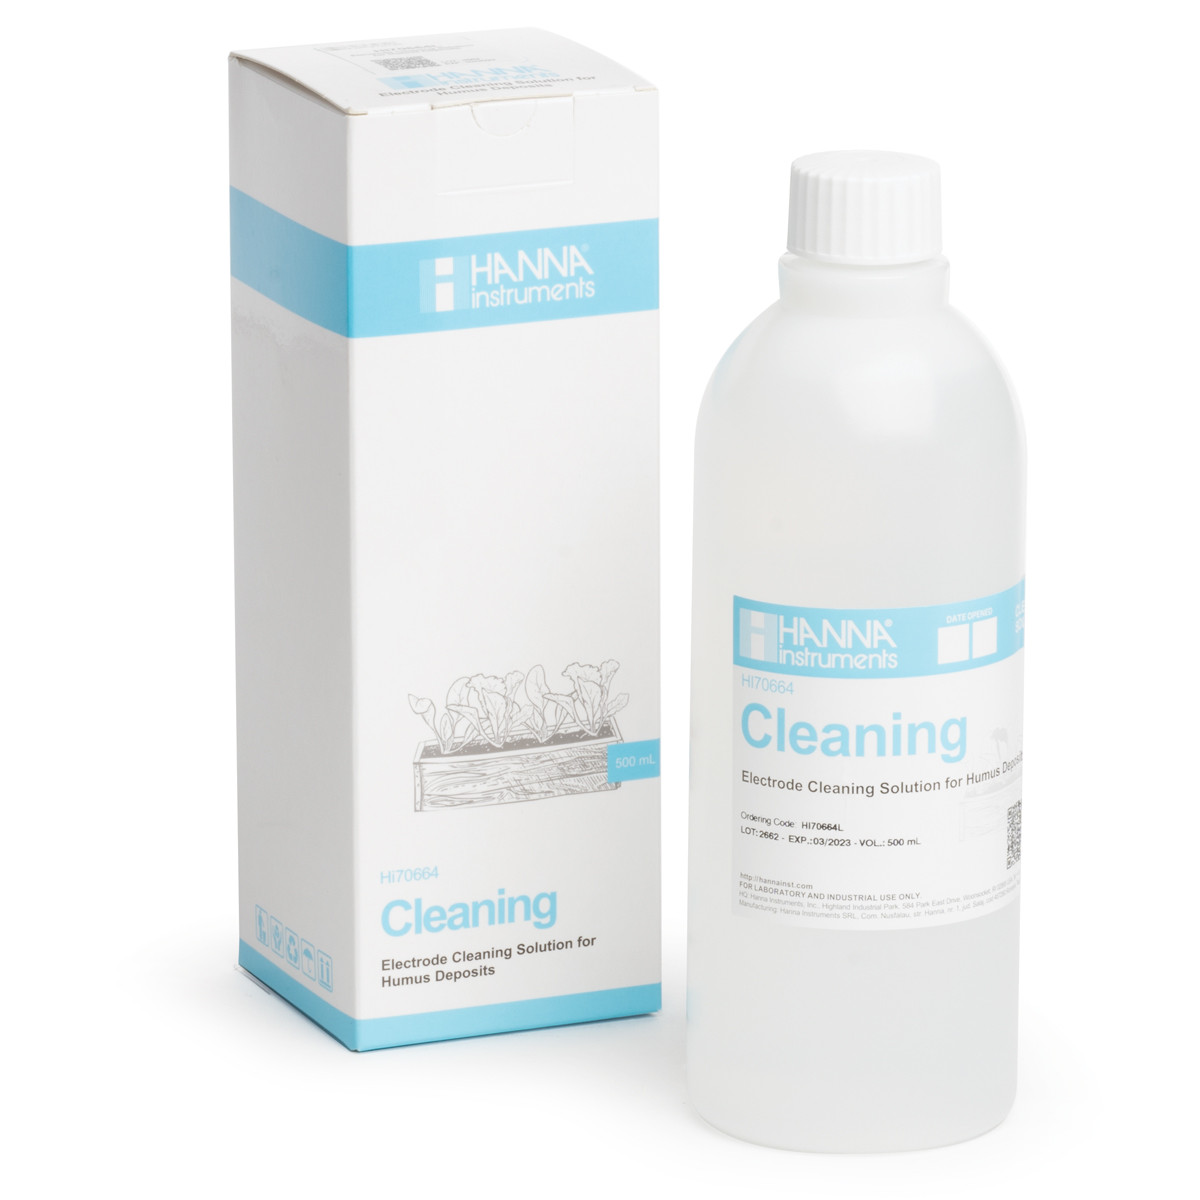 Cleaning Solution for Humus Deposits (500 mL)